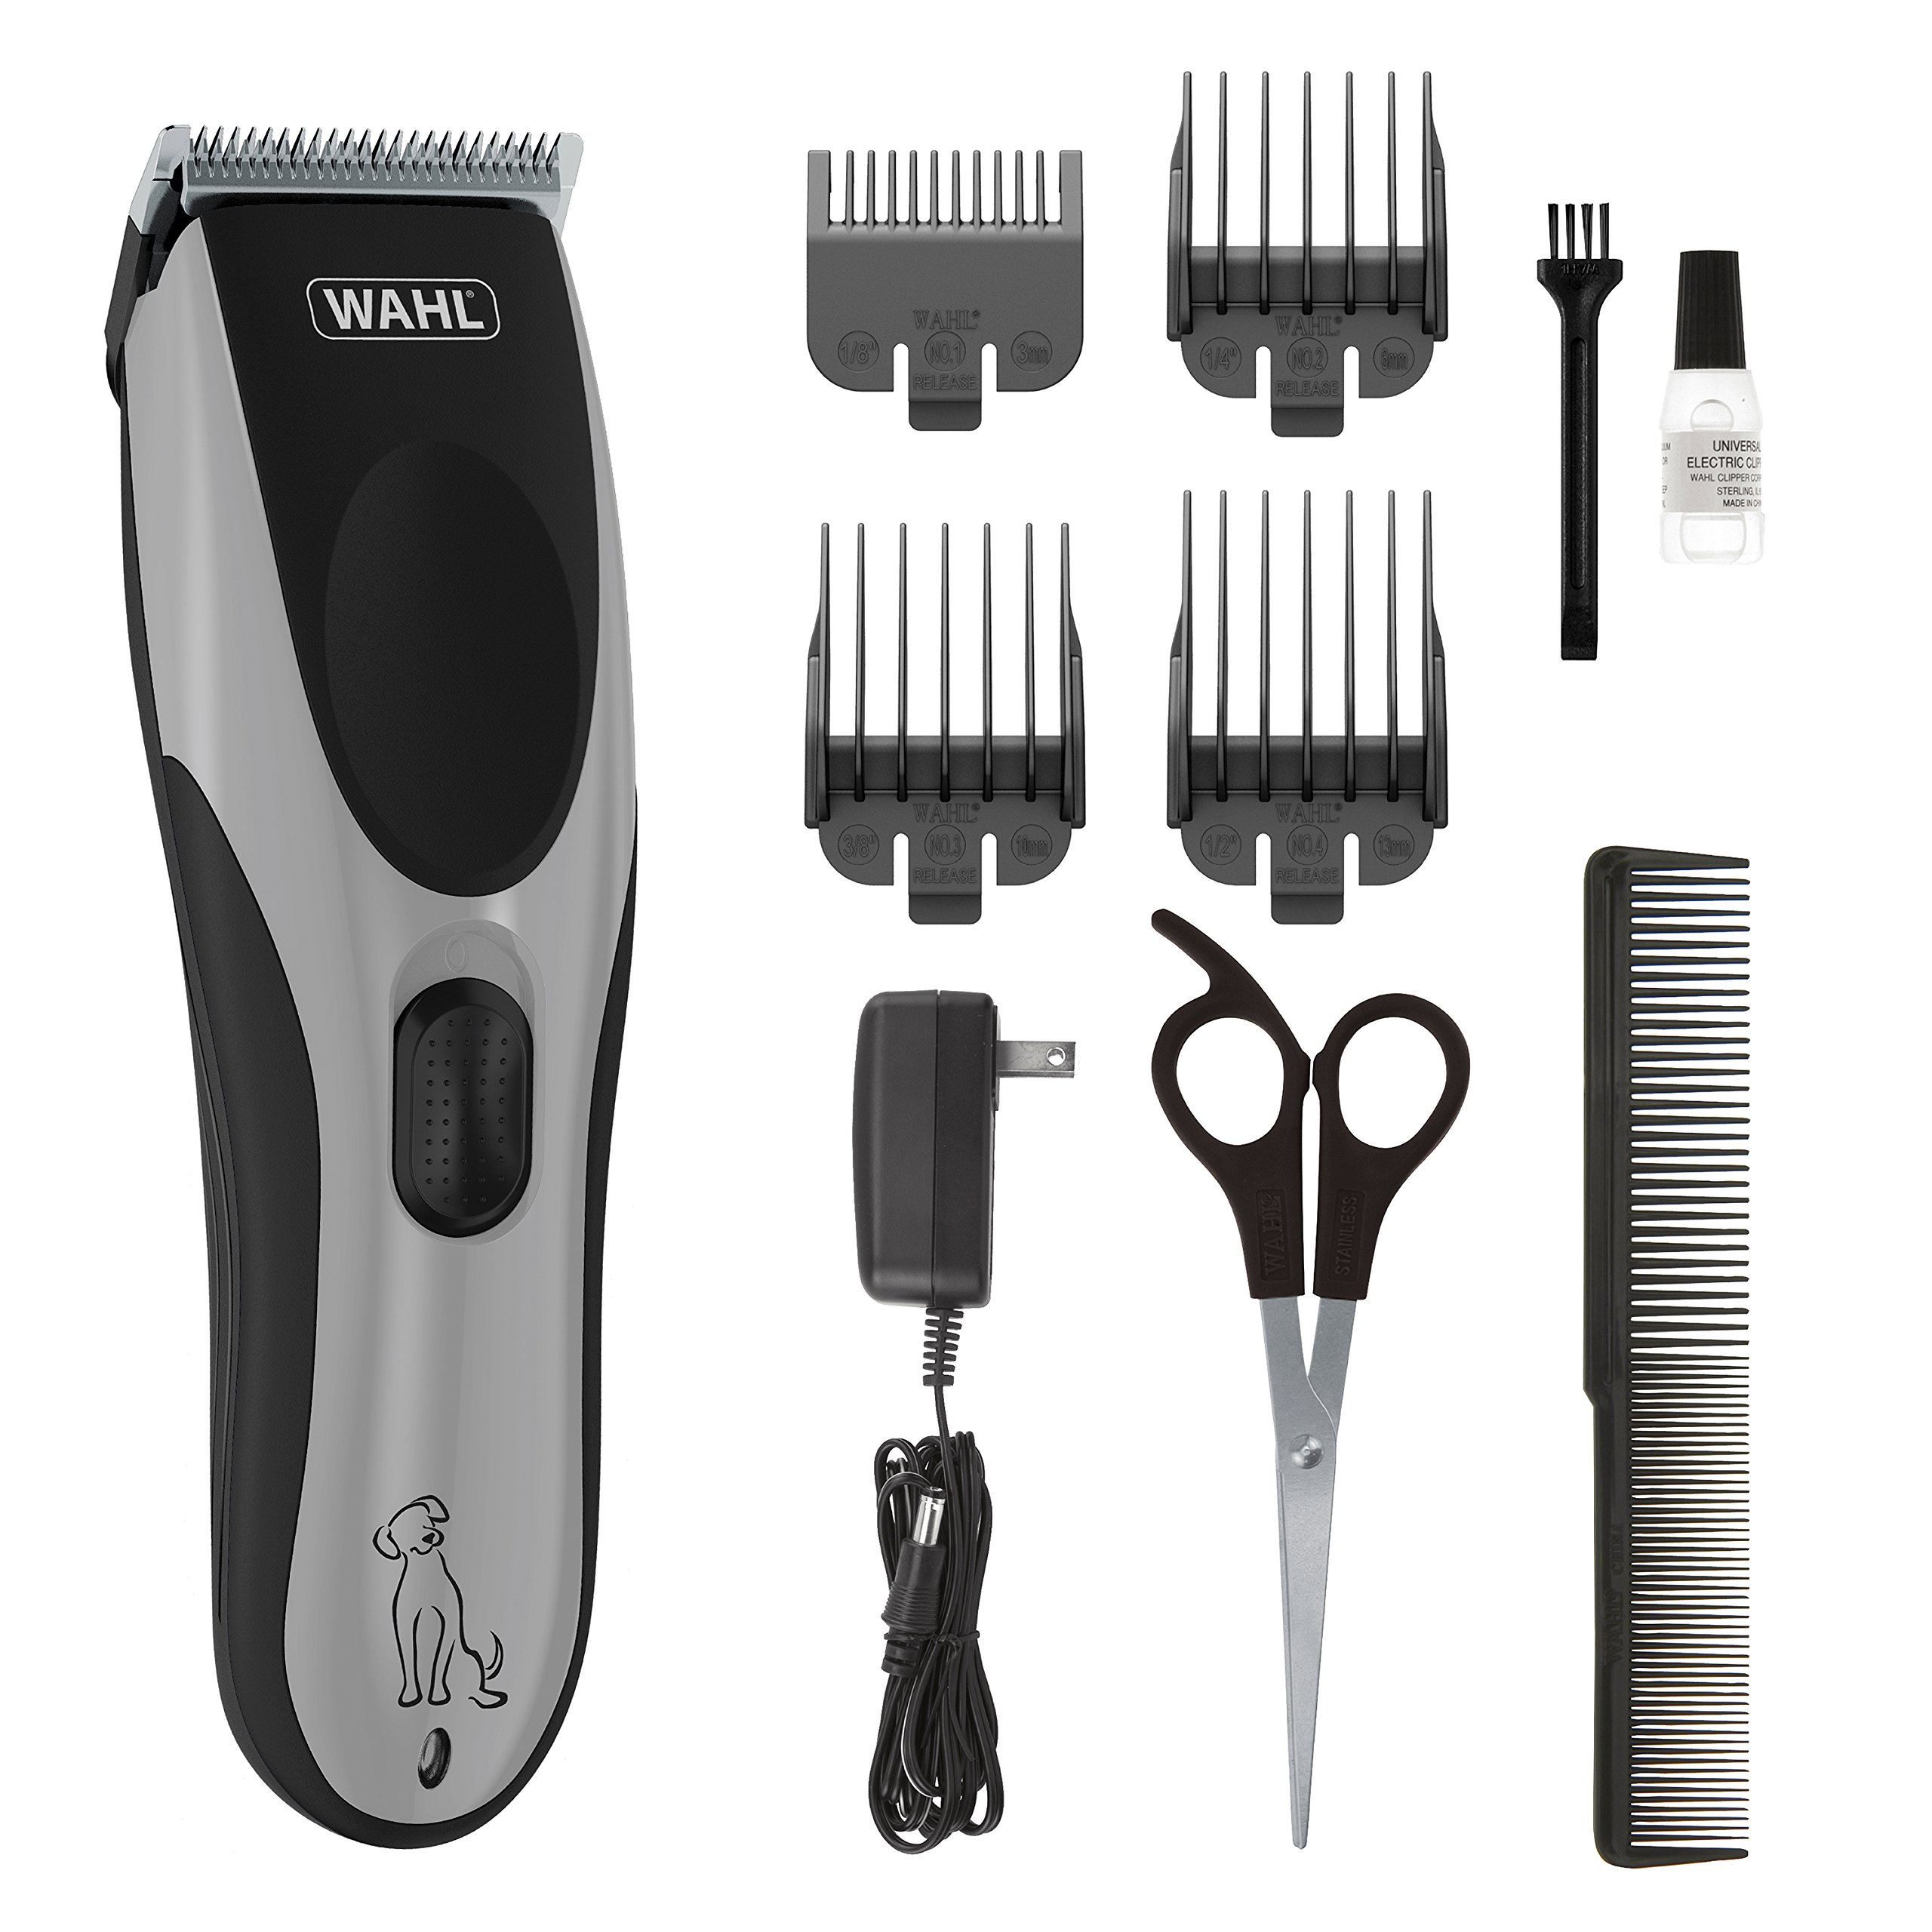 Wahl Easy Pro Pet Clippers Low Noise Heavy Duty 09549 Cord/Cordless Rechargeable Dog Grooming Clippers